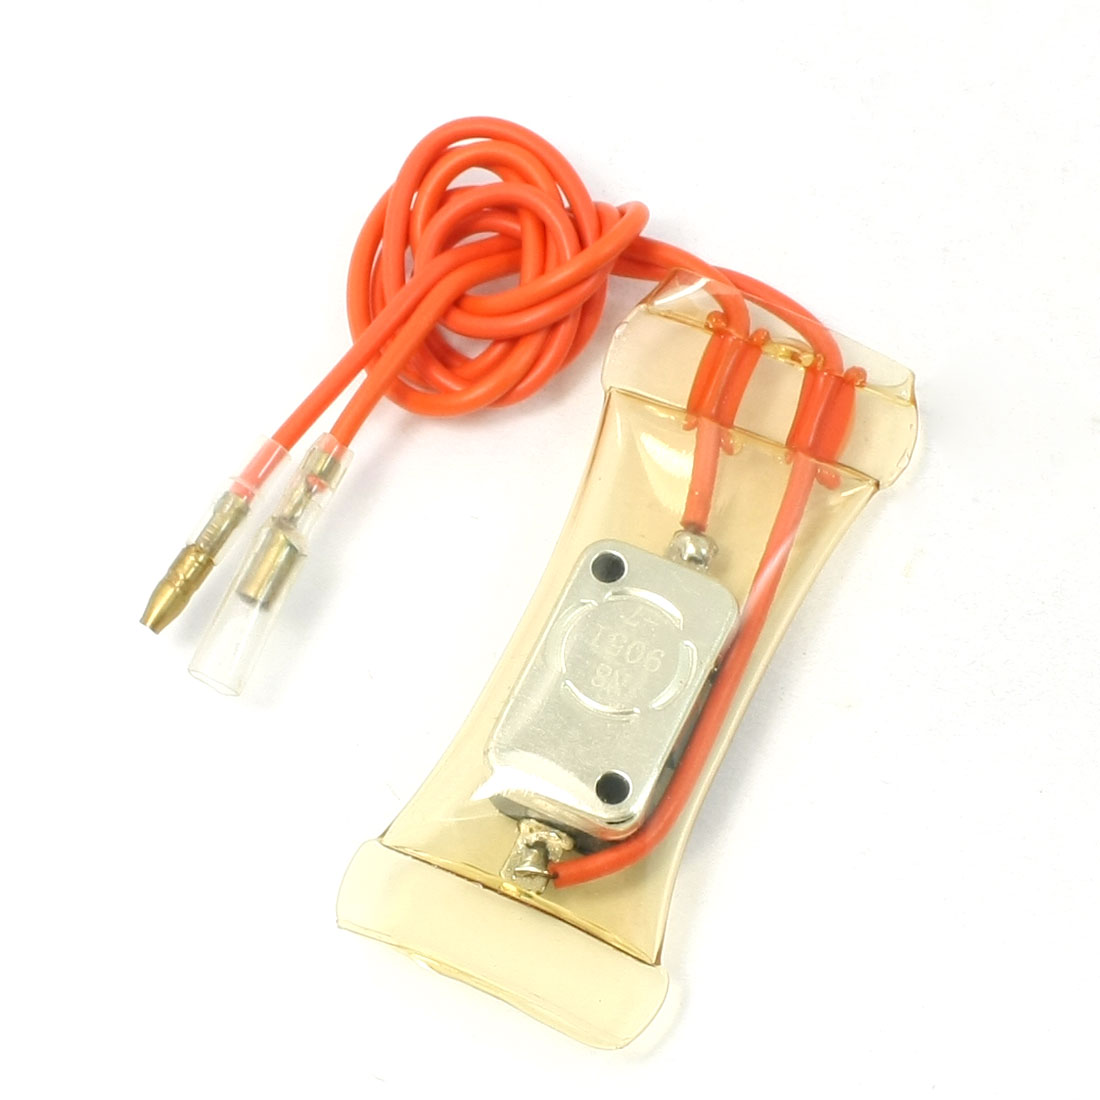 -7 Celsius NO Temperature Control Switch Thermostat ST-3 Series for Refrigerator